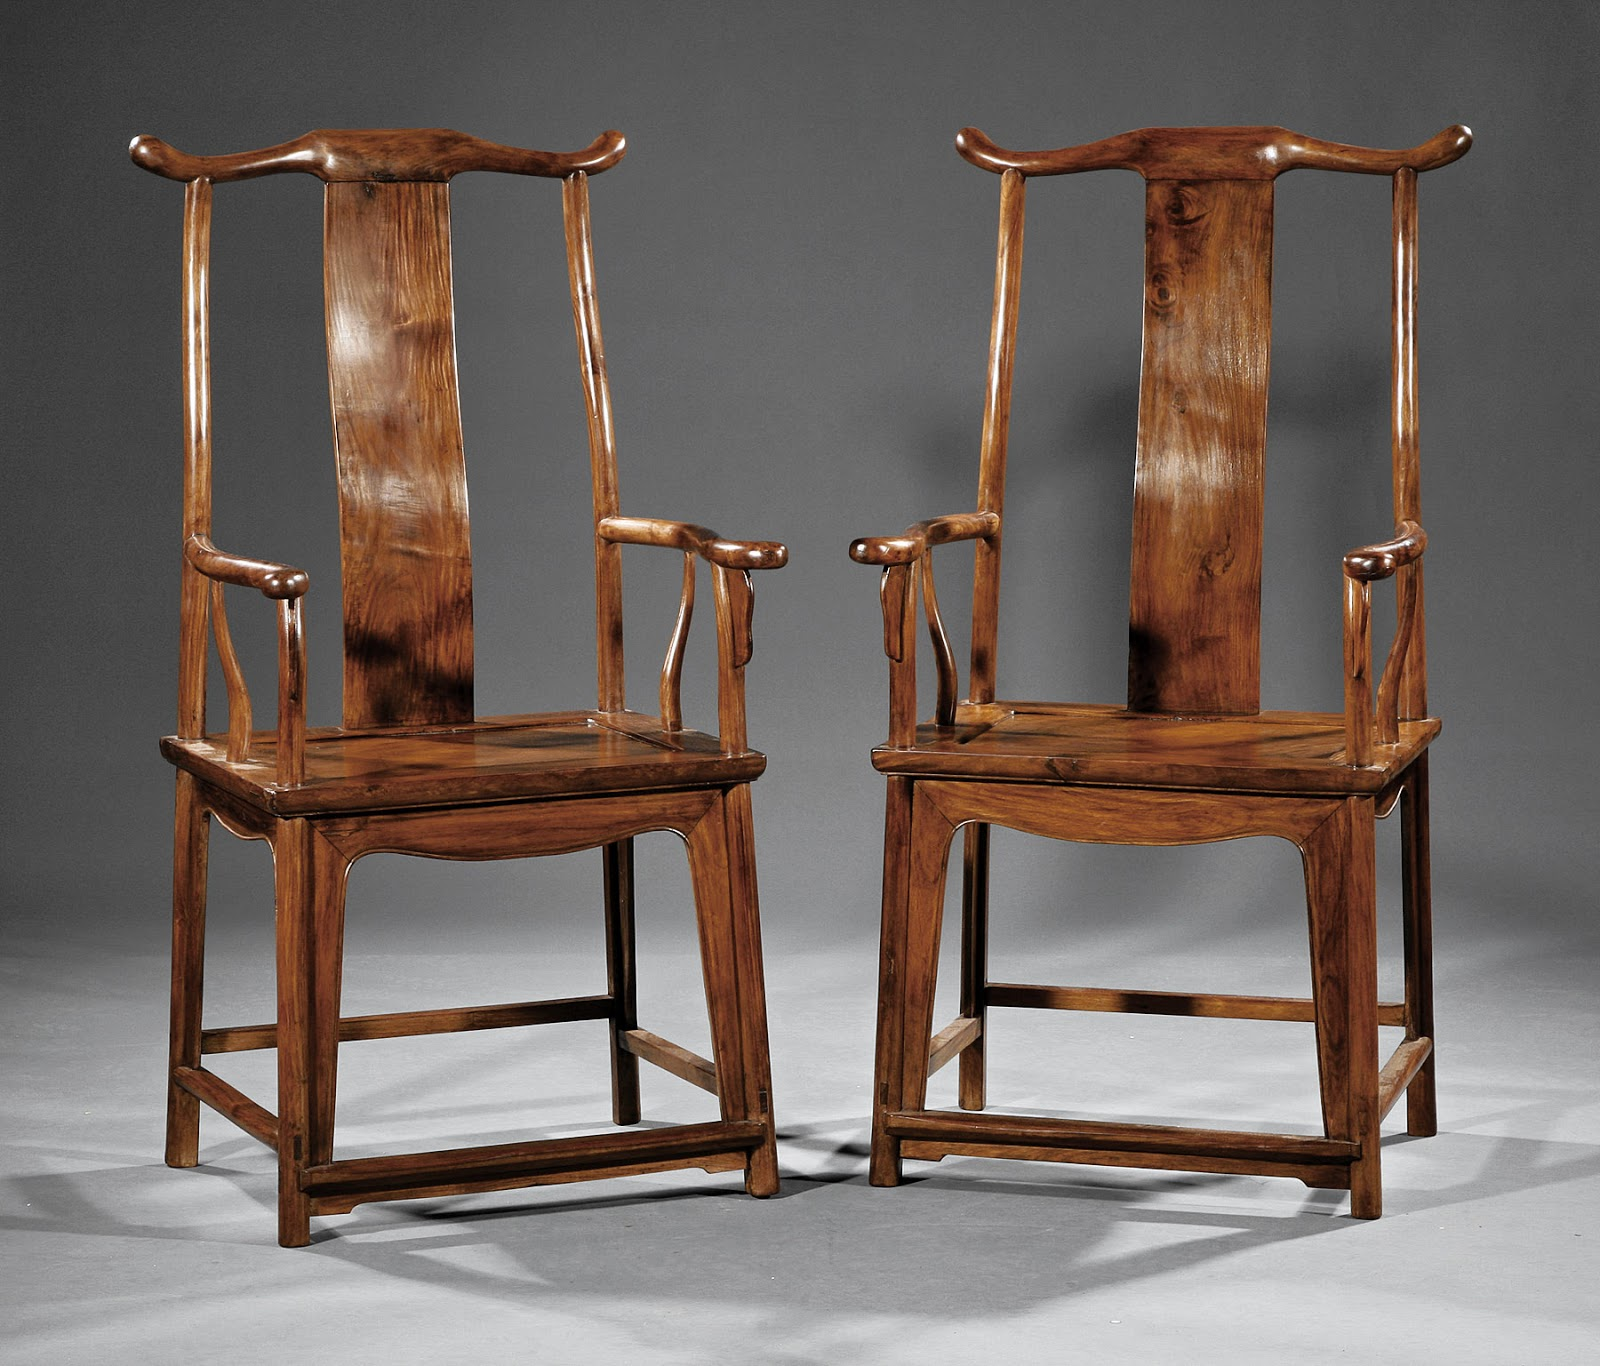 Attractive The Horseshoe Back Chair Is Of Course A Riff On The Same Idea, But Using A  Slightly Different Shape, That Of A Horseshoe. The Second Set Of Chairs  Actually ...